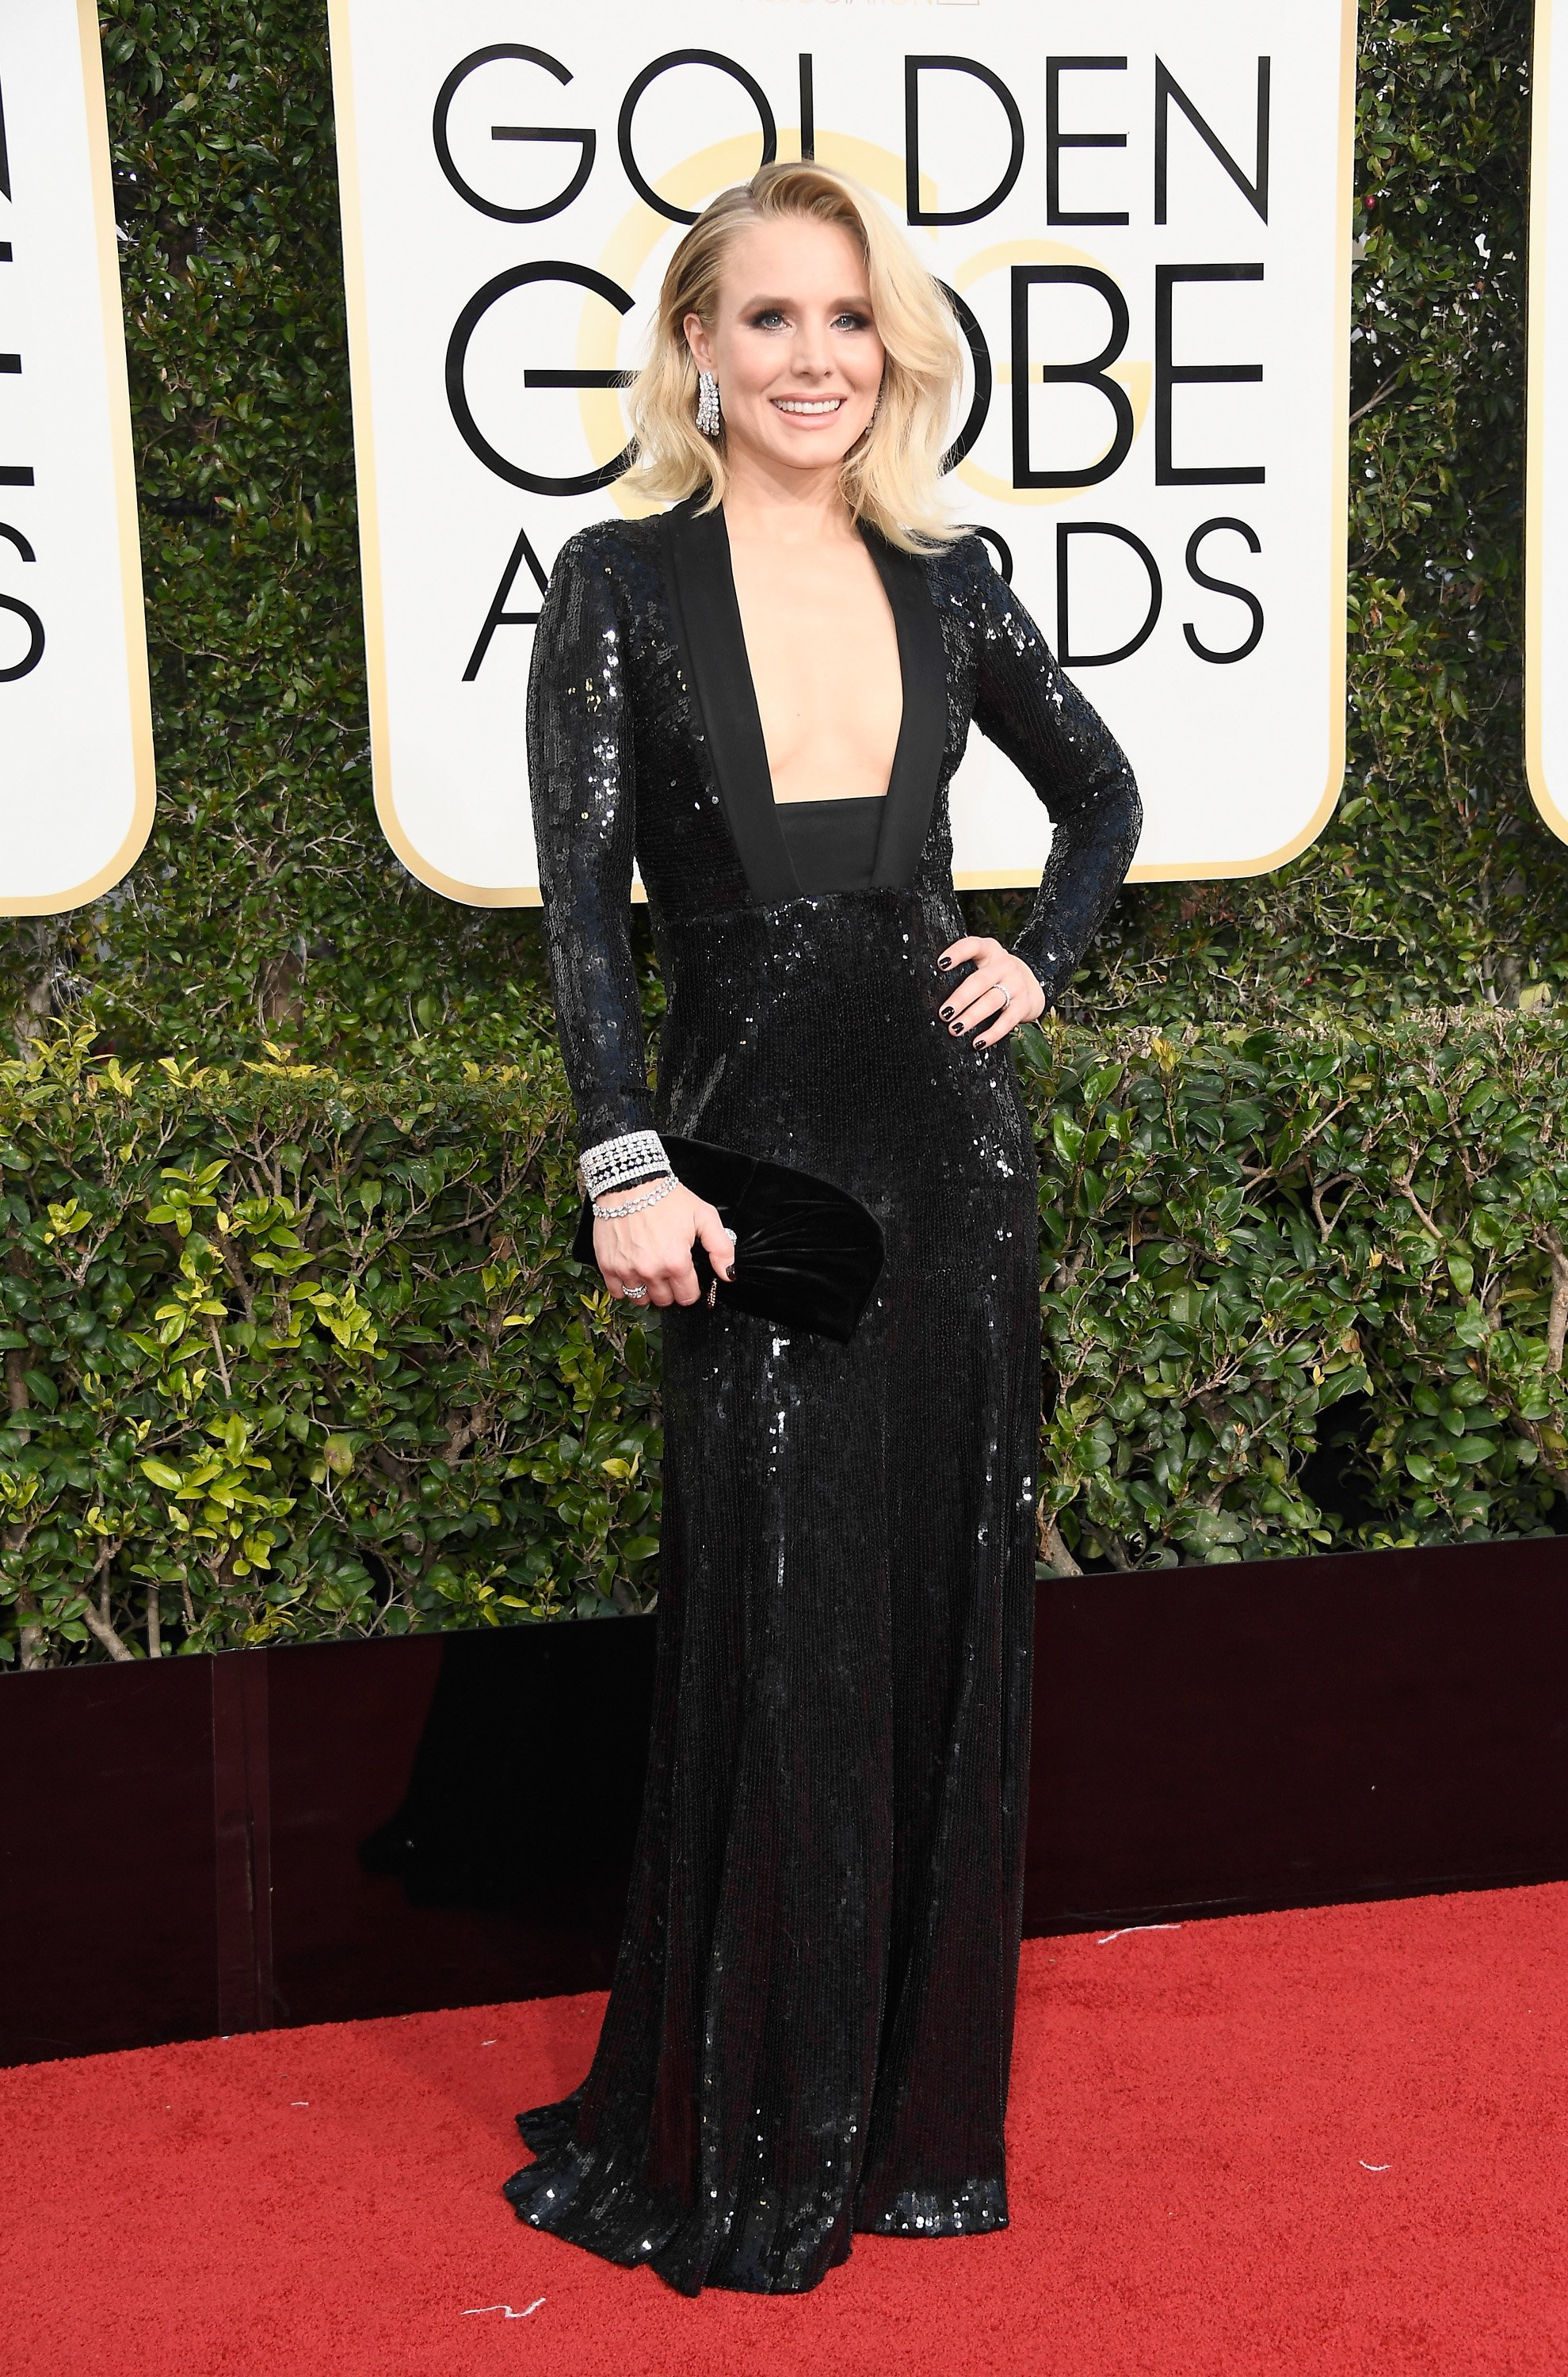 Image result for kristen bell golden globes 2017